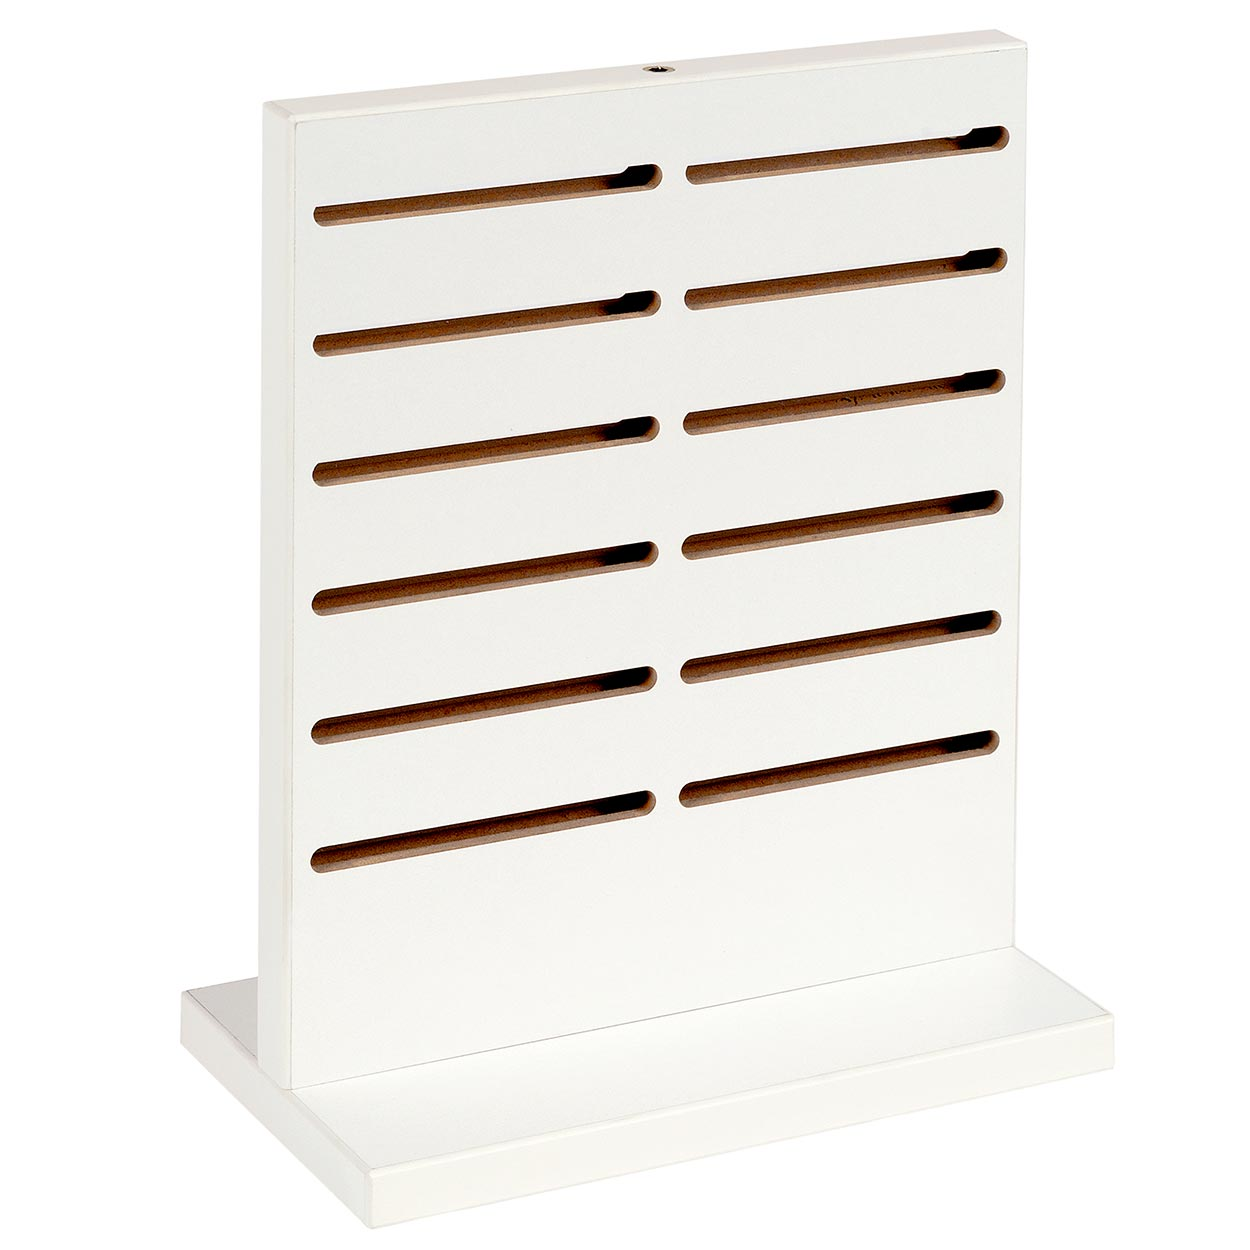 Jewellery Display White Counter Top Panel. Double Sided. Dim 250(W) x 140(D) x 318mm(H). Hooks not included.